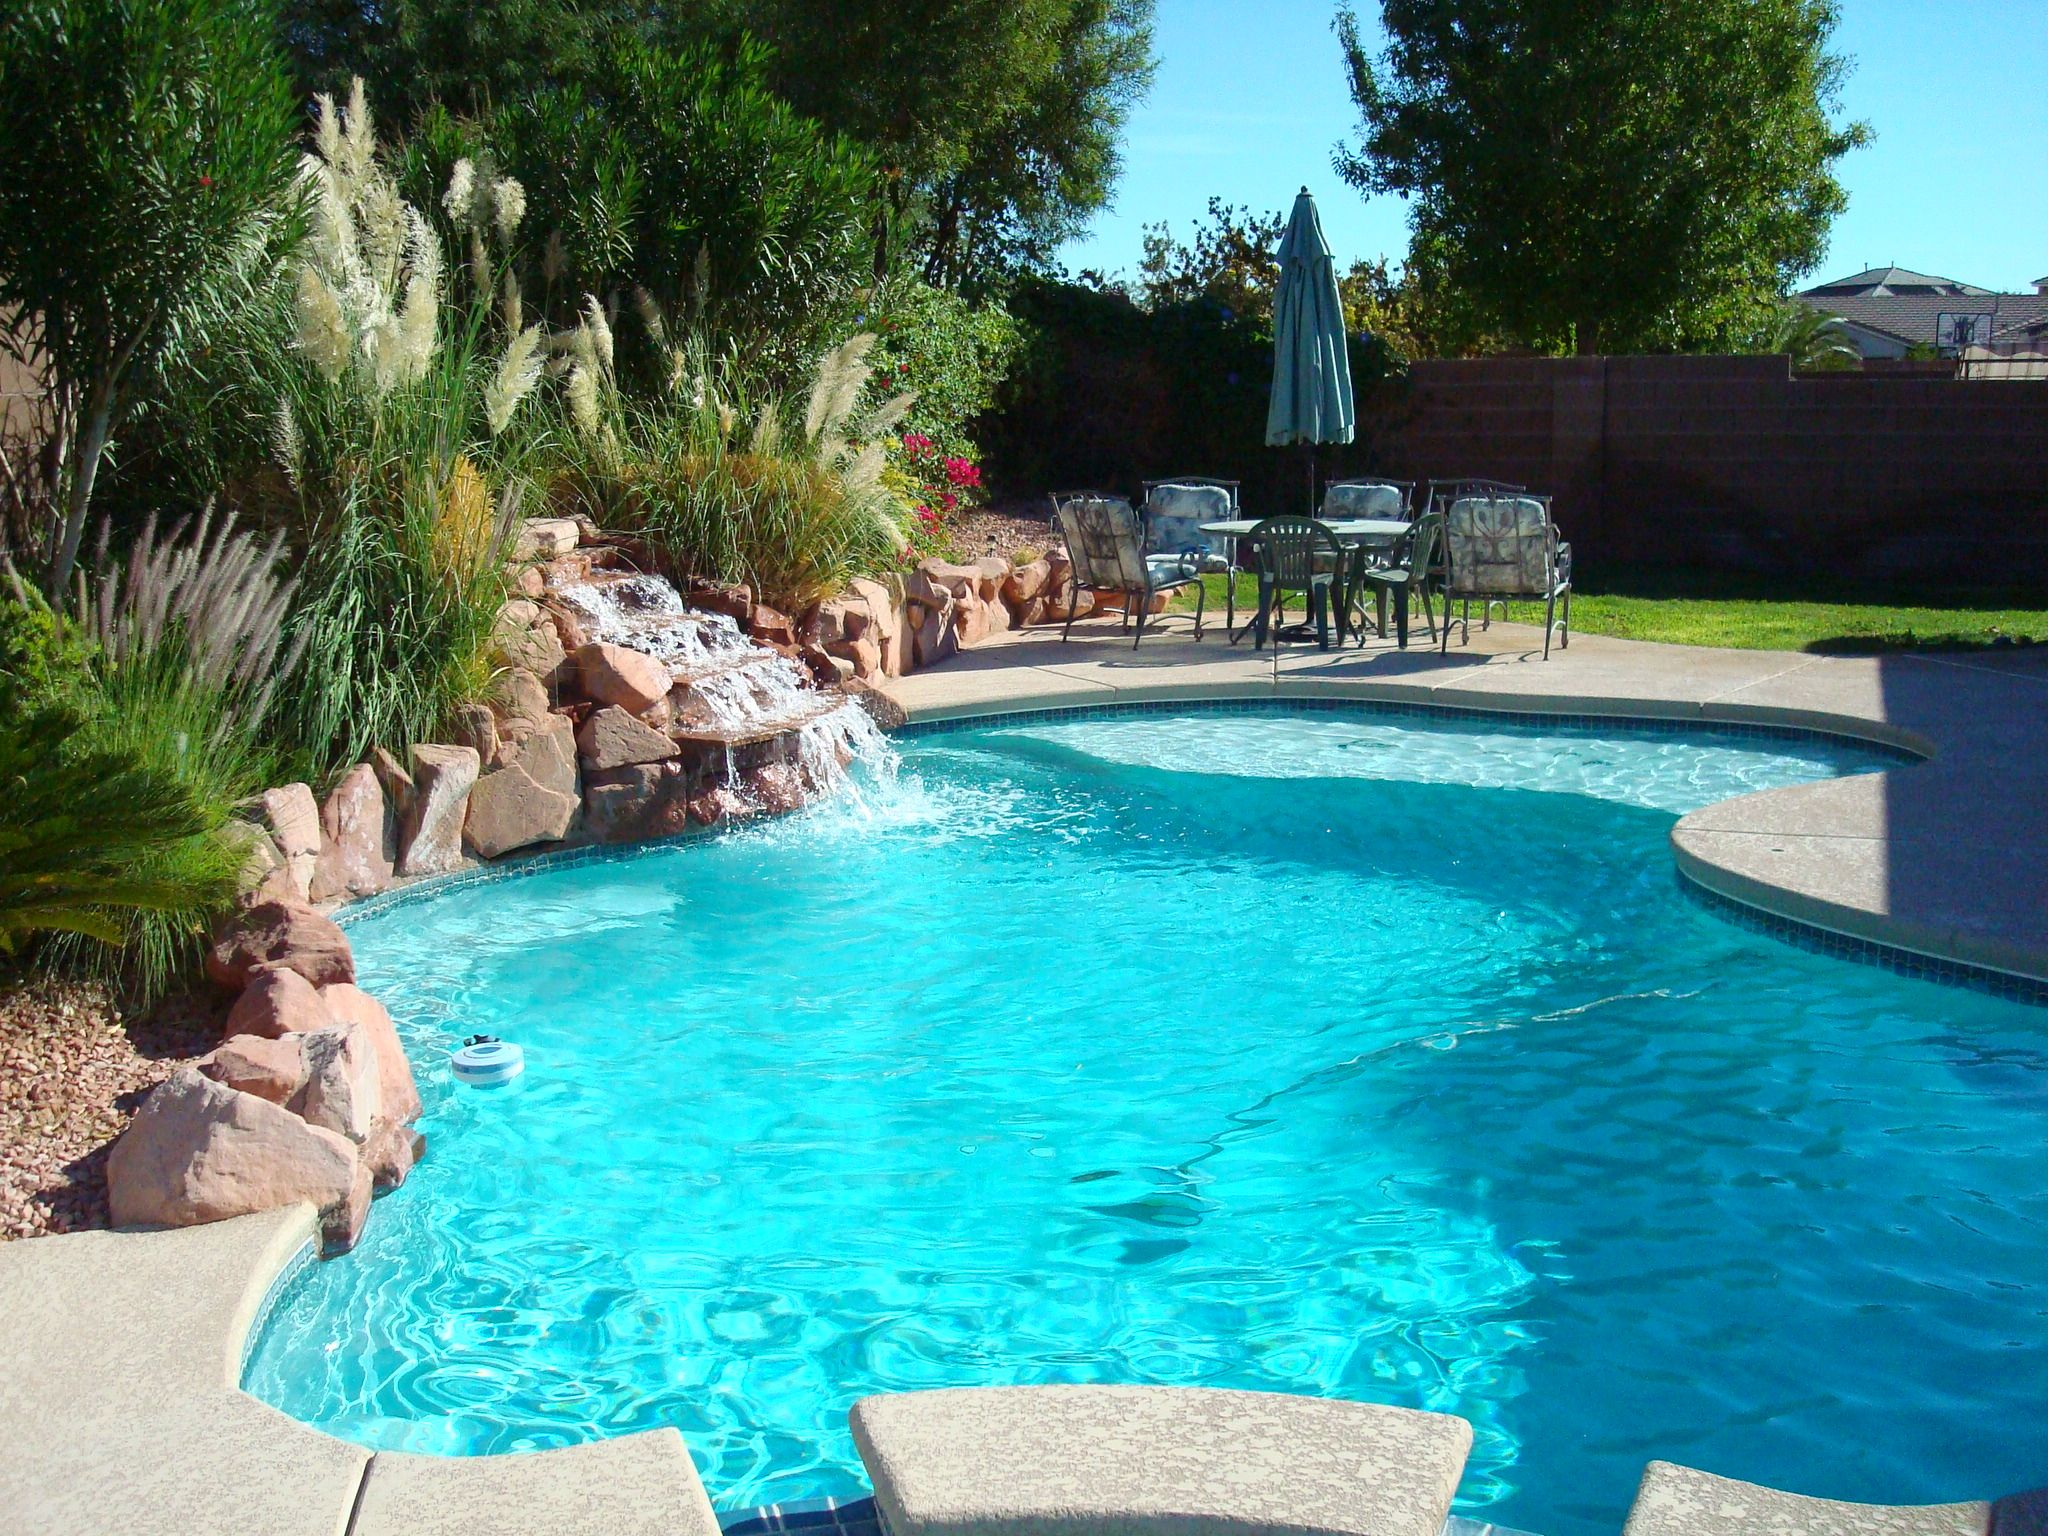 10+ images about pools on pinterest | luxury pools, backyards and